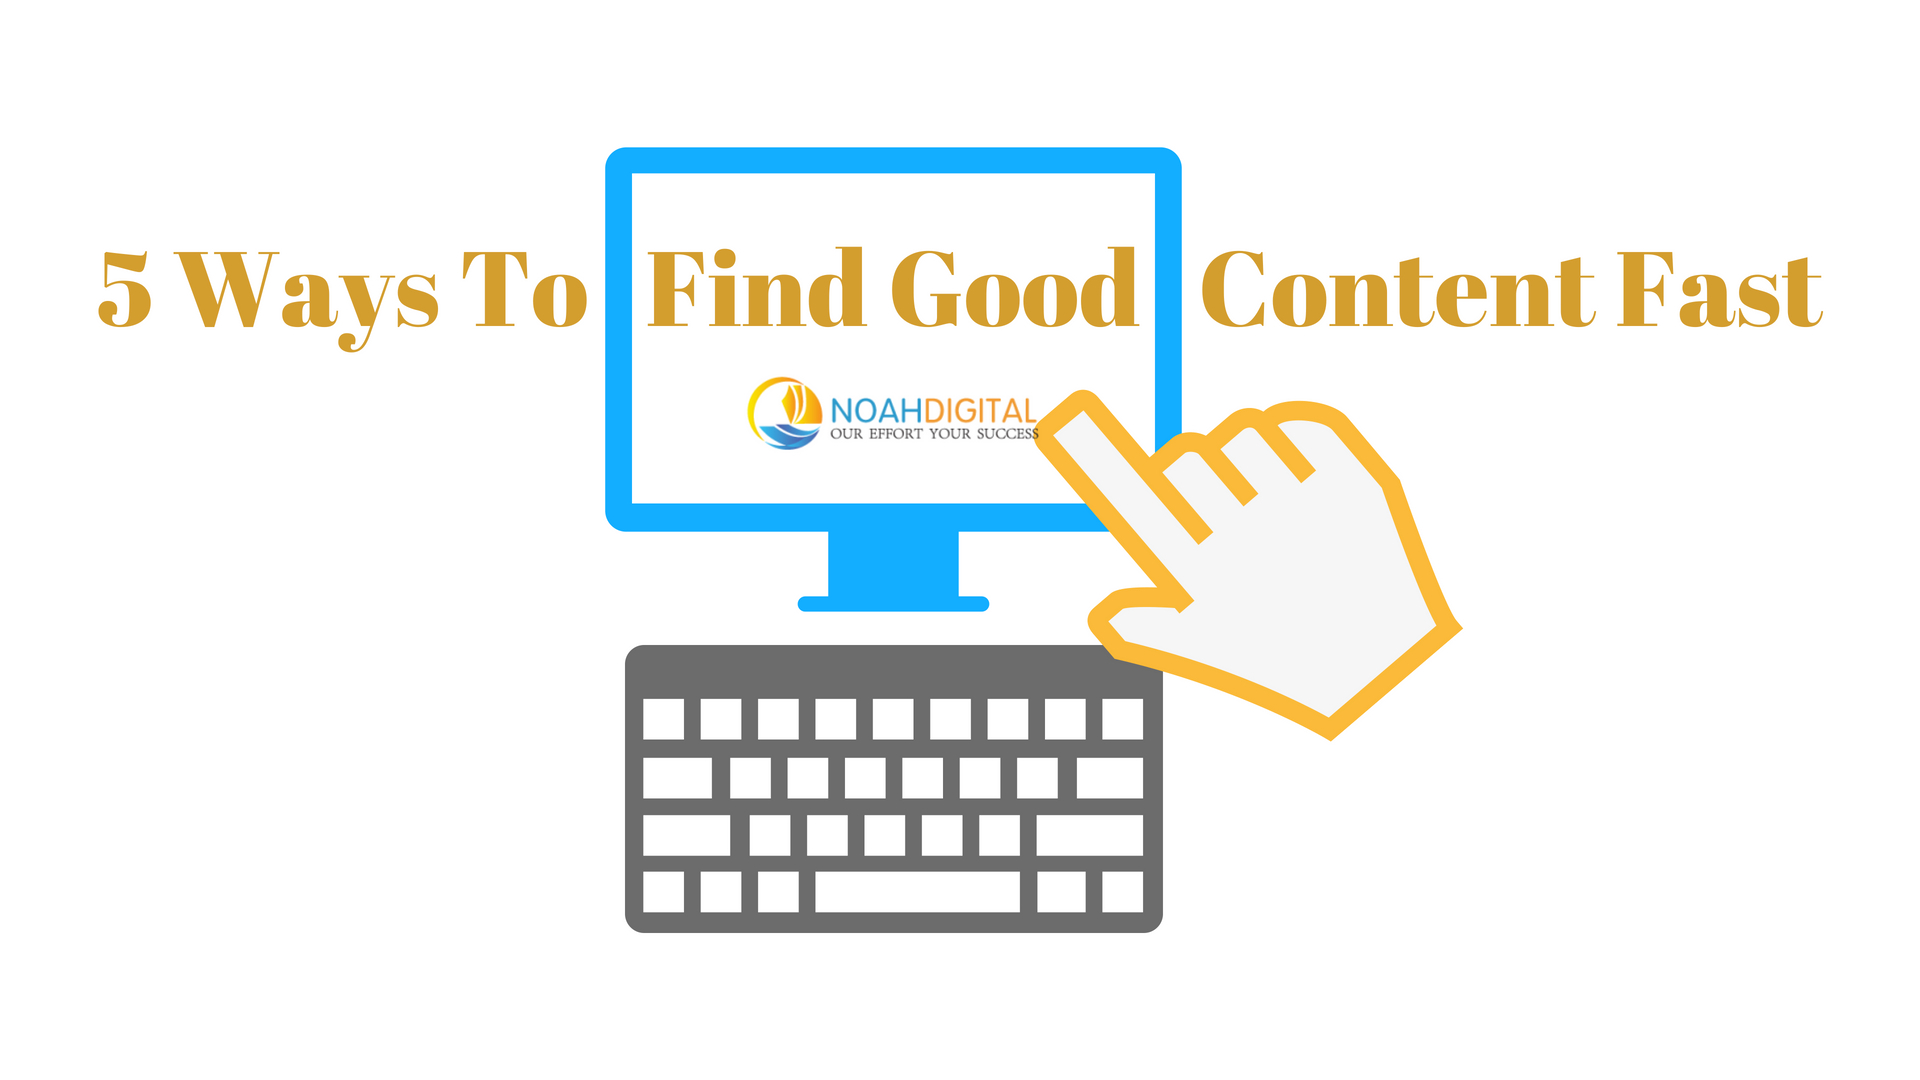 Ways to find good content fast